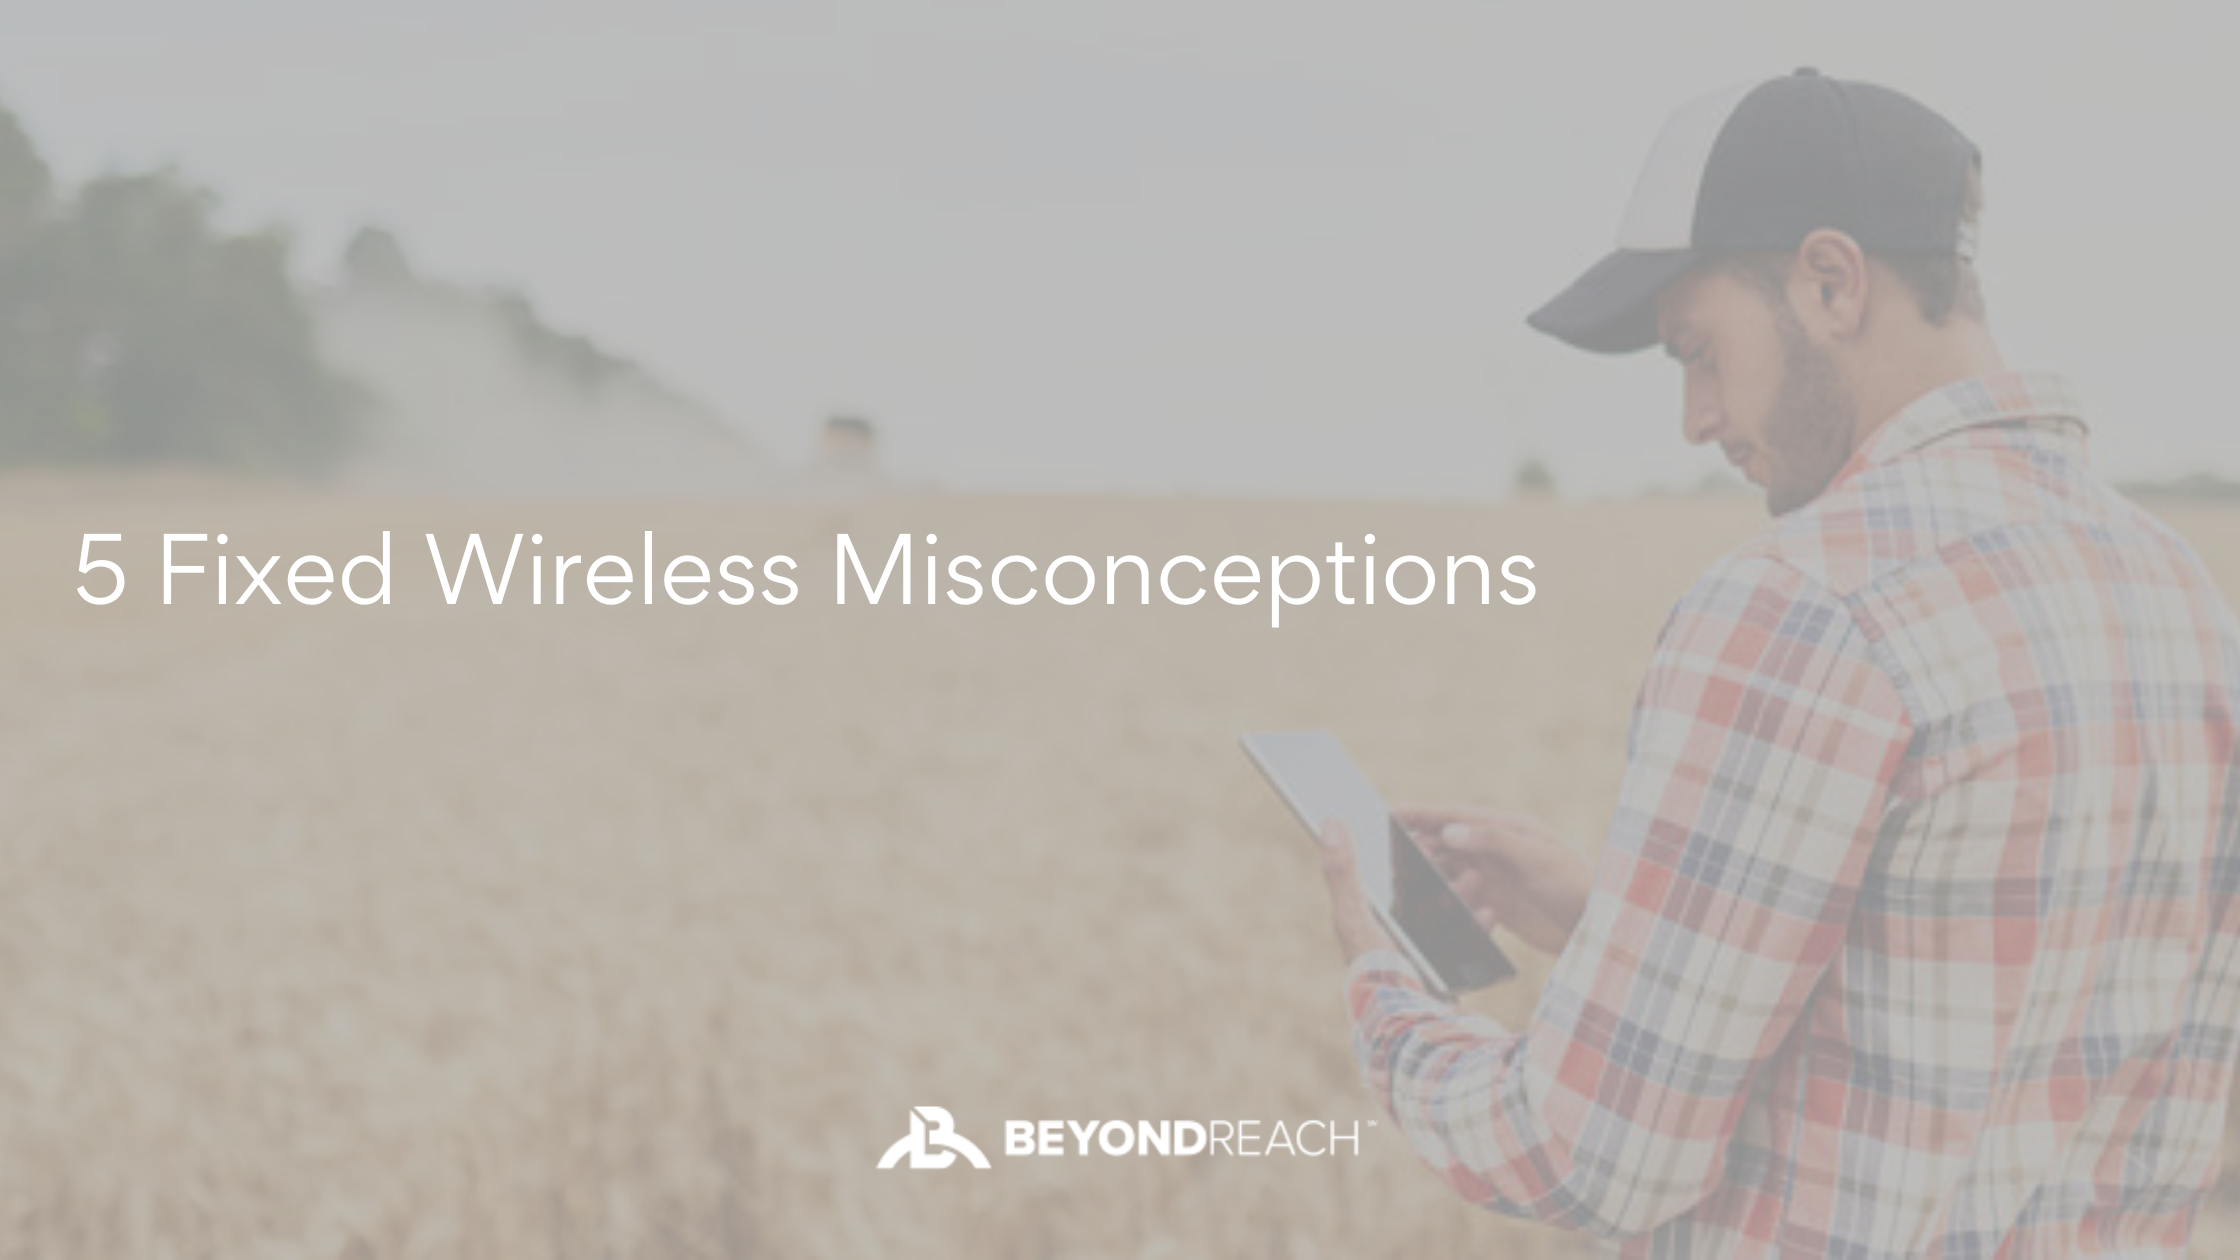 5 Fixed Wireless Misconceptions